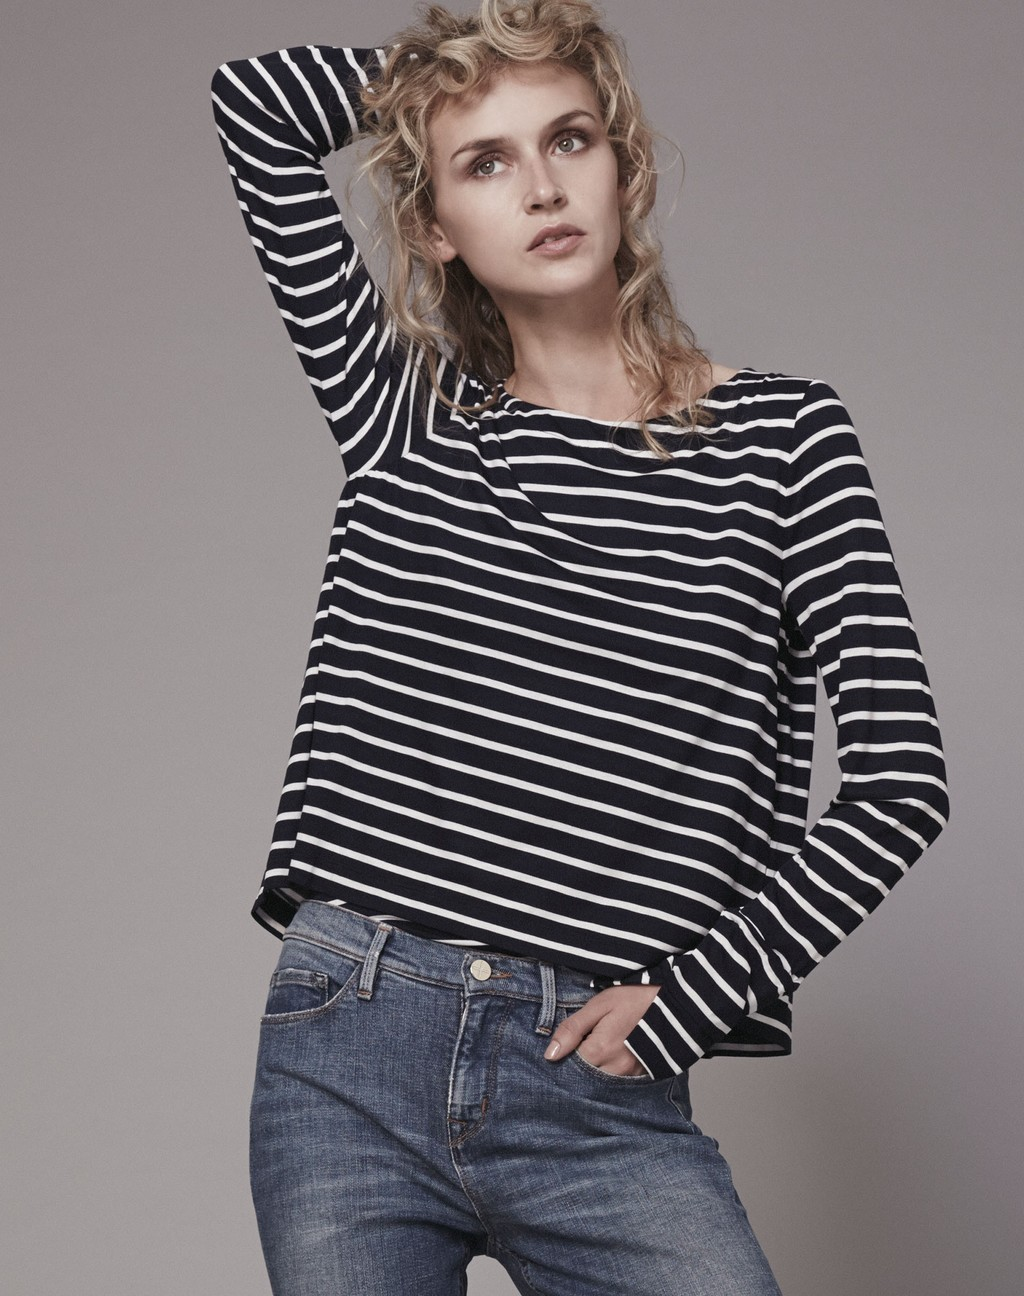 Double Layer Stripe Tee Navy/Soft White - neckline: round neck; pattern: horizontal stripes; style: t-shirt; secondary colour: white; predominant colour: navy; occasions: casual, creative work; length: standard; fibres: cotton - stretch; fit: straight cut; sleeve length: long sleeve; sleeve style: standard; trends: monochrome; pattern type: fabric; texture group: jersey - stretchy/drapey; pattern size: big & busy (top); season: s/s 2016